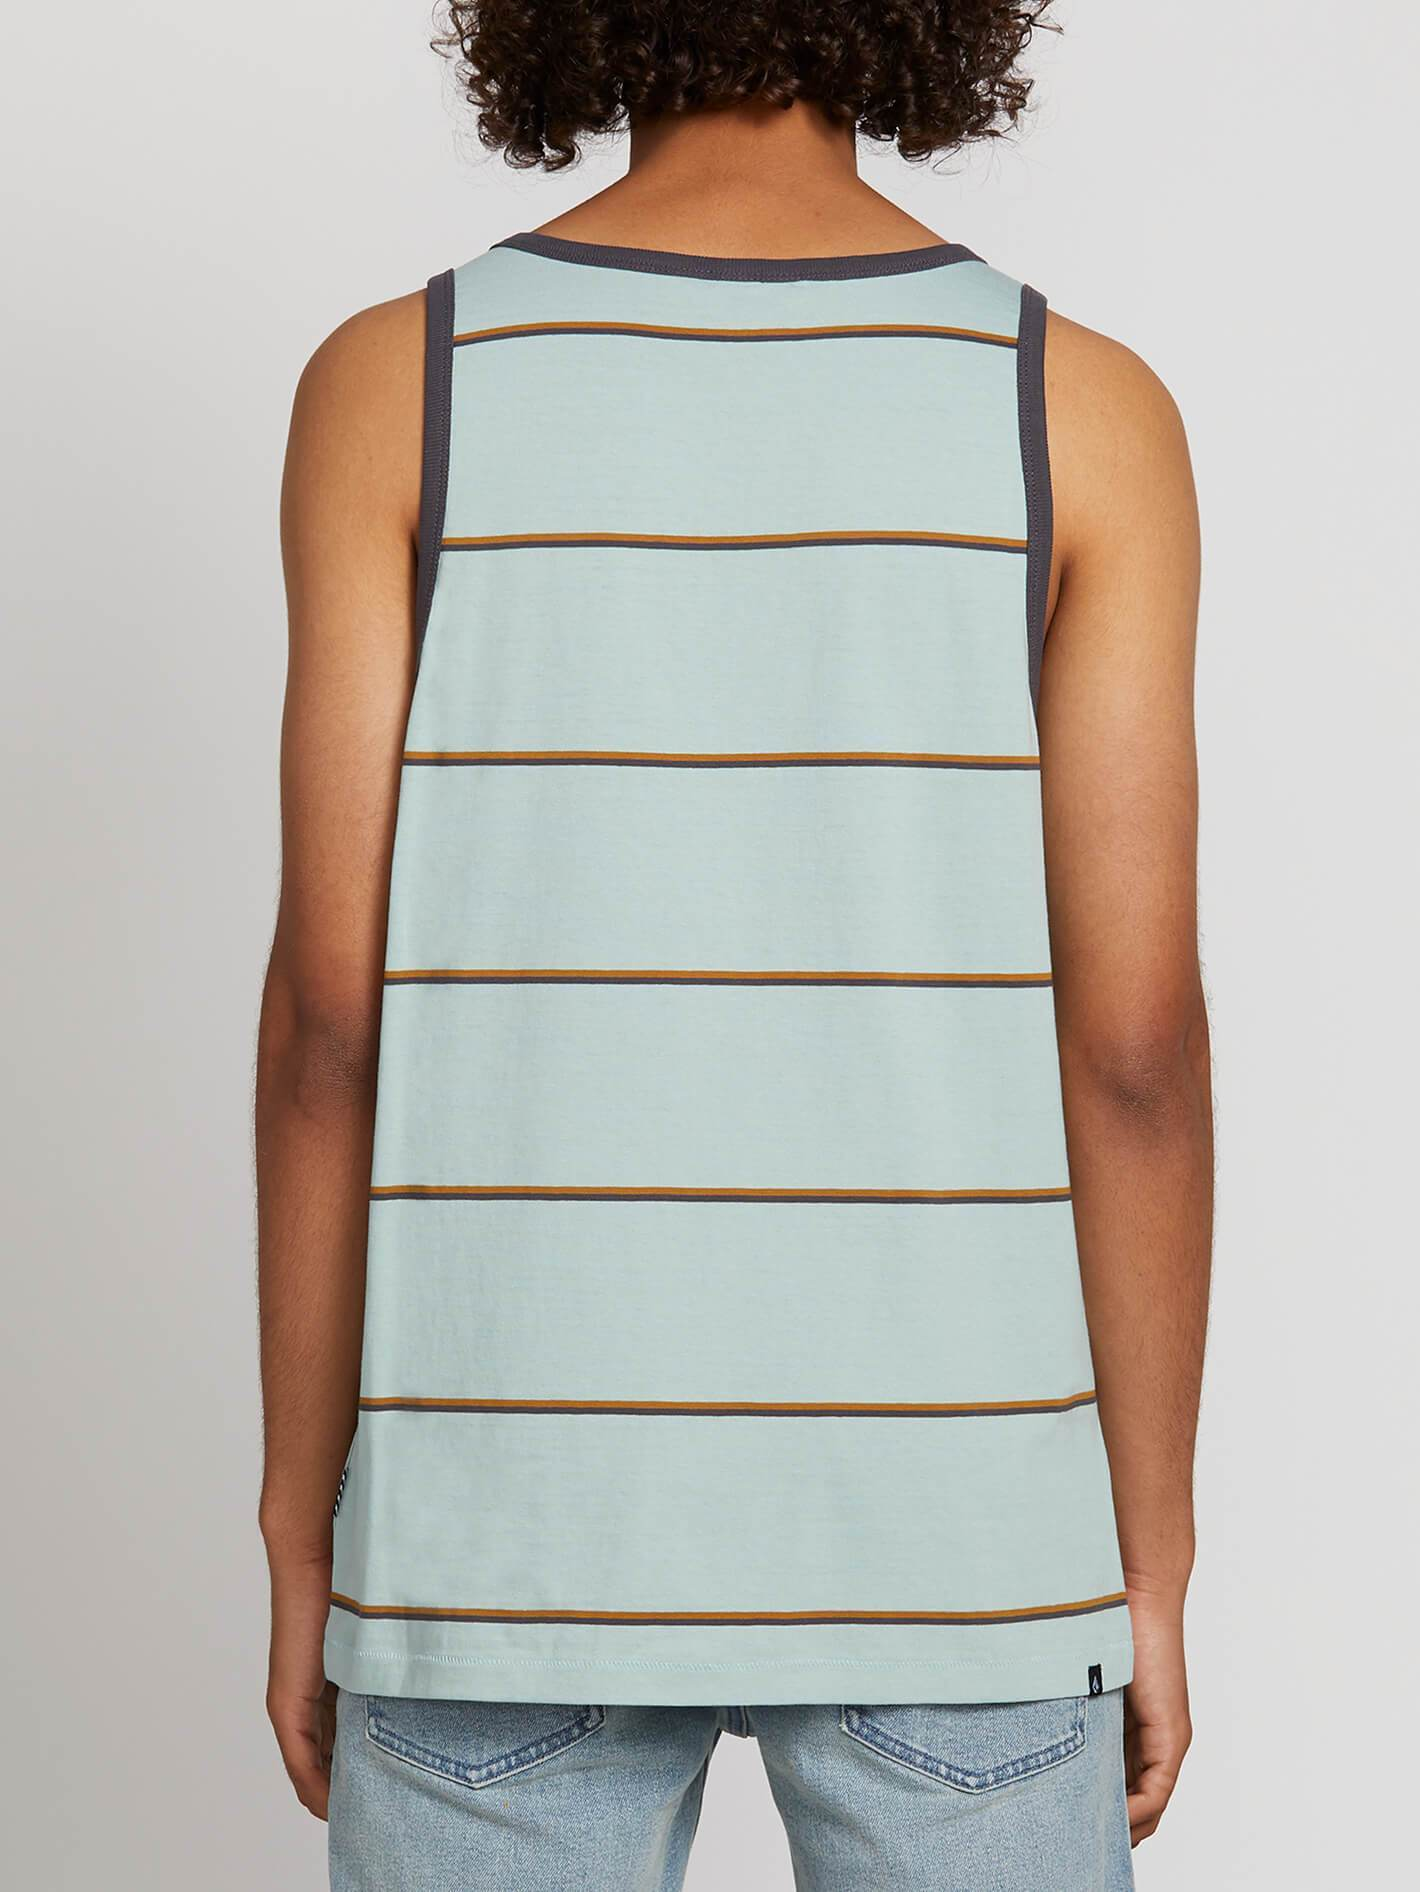 Volcom Shaneo Tank Top - 88 Gear